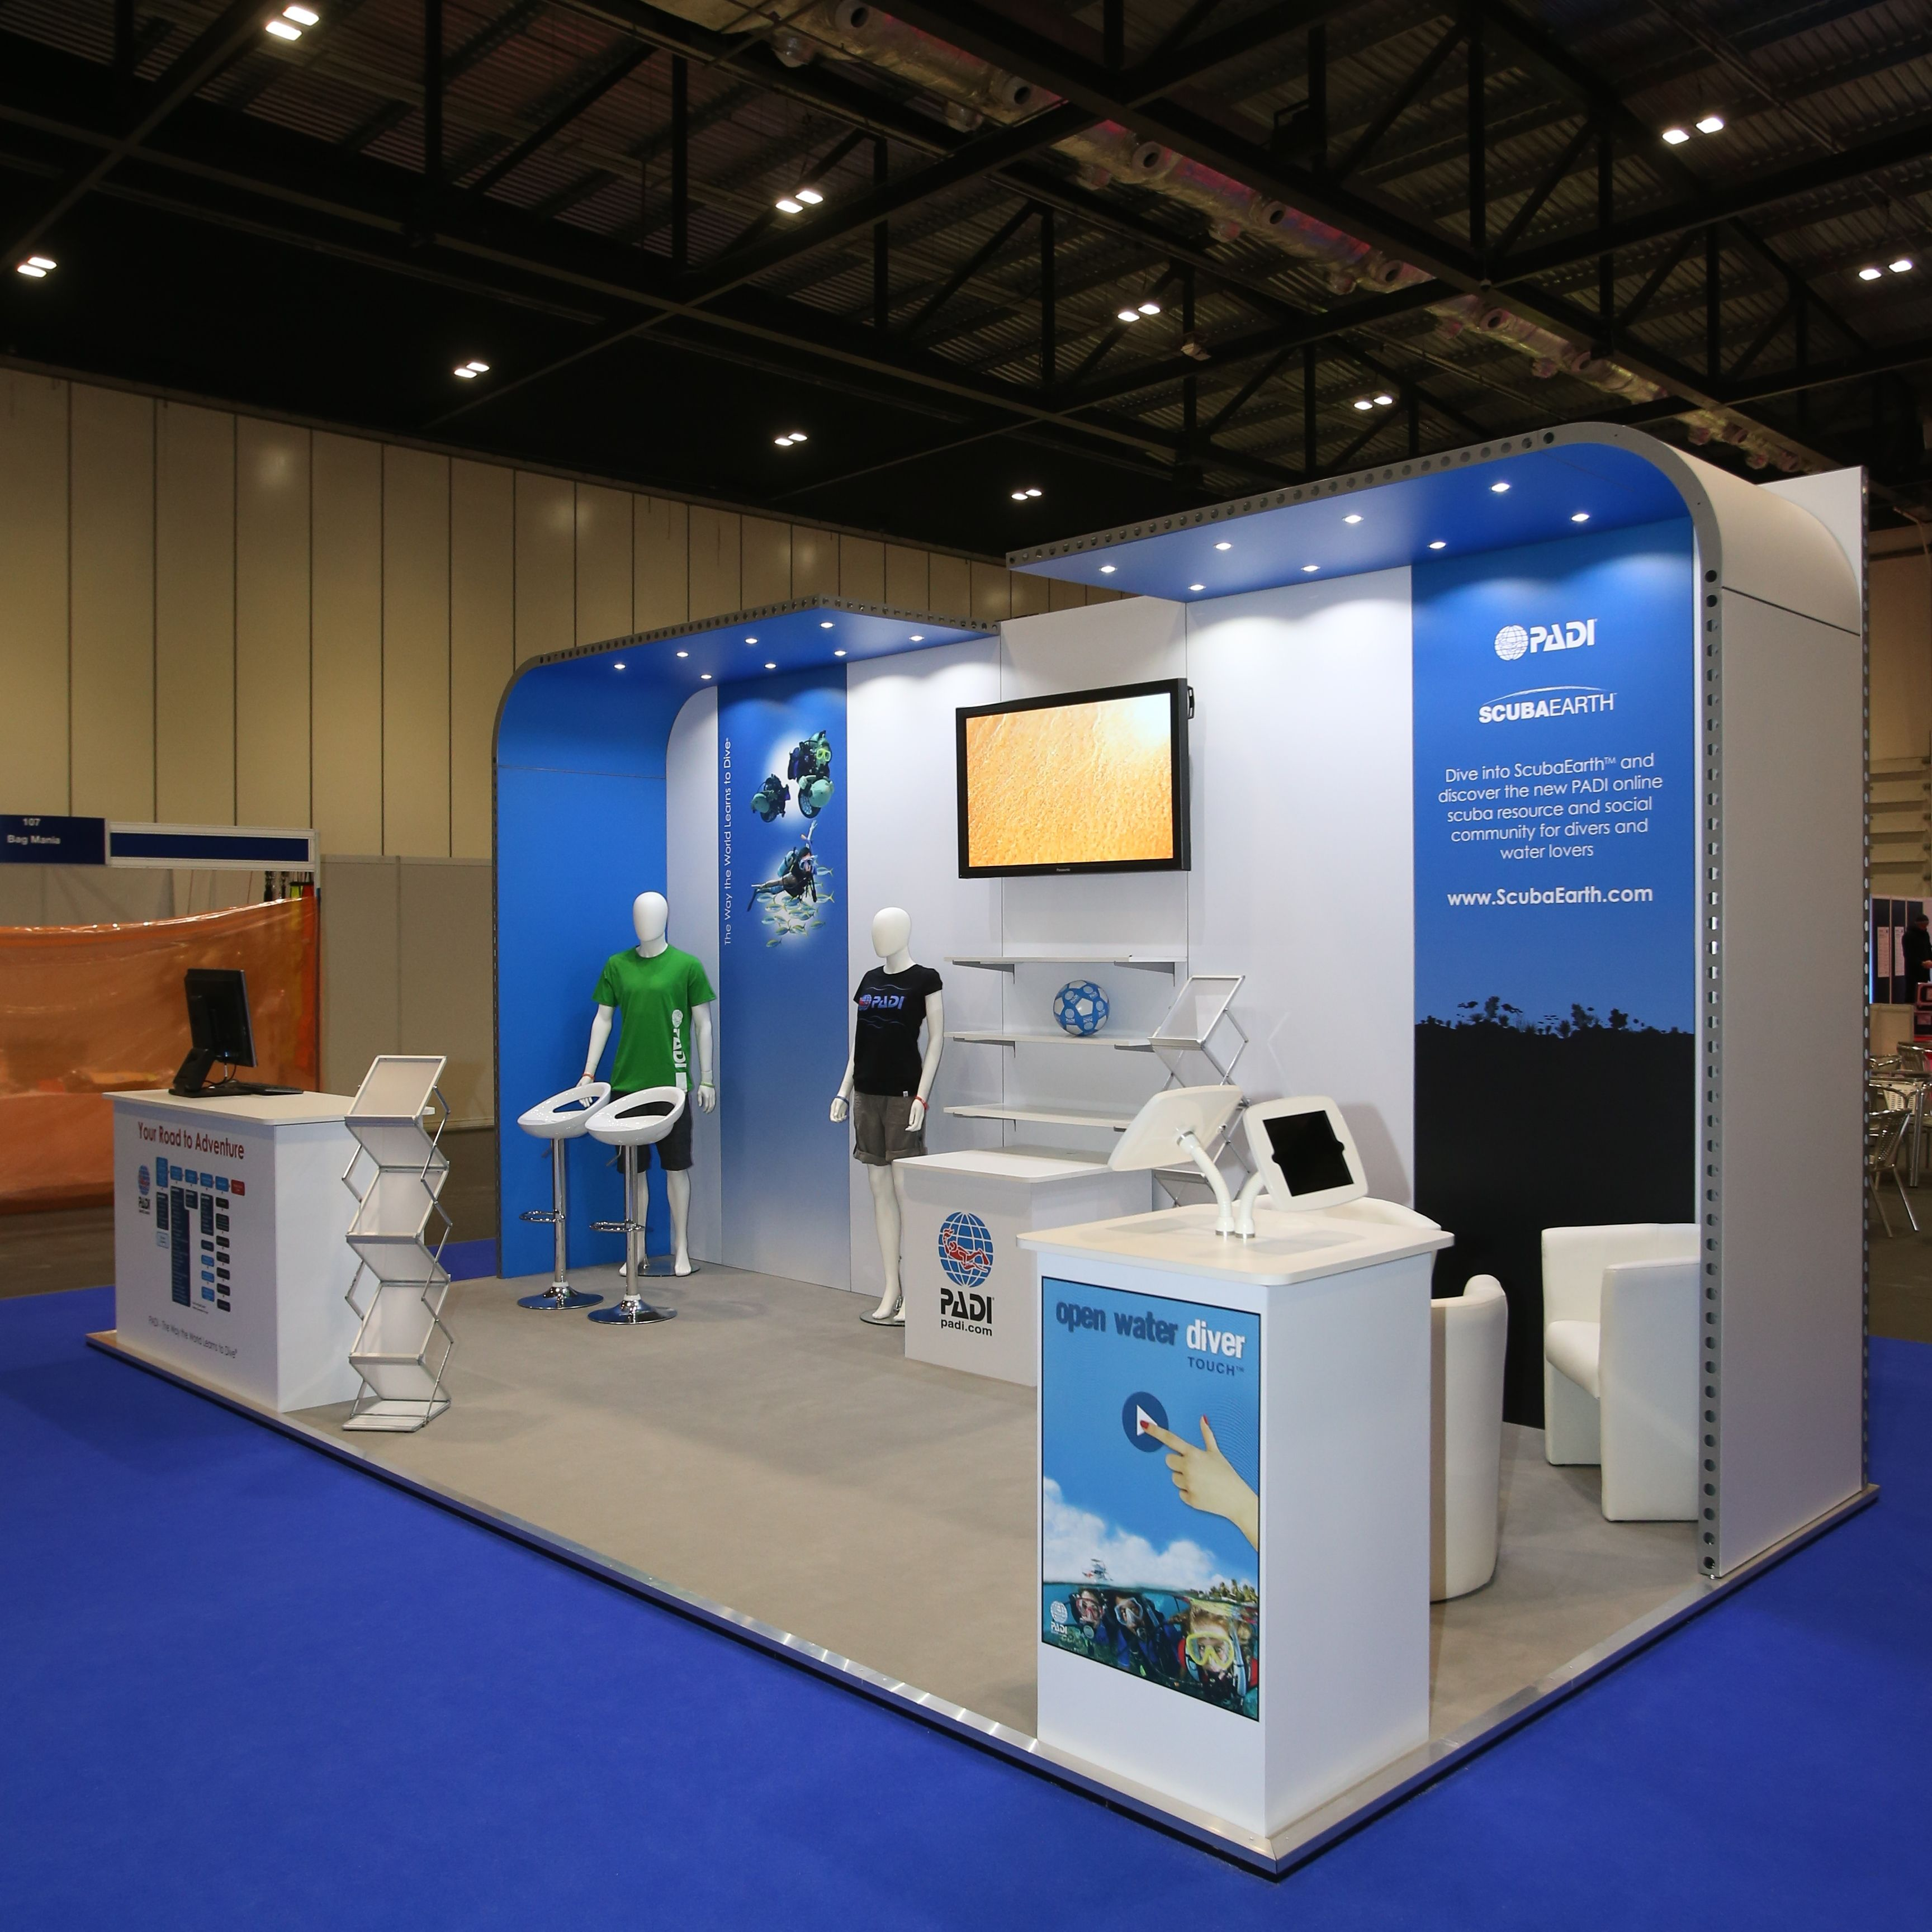 School Exhibition Stall Design : Padi international diving school using the latest technology wih